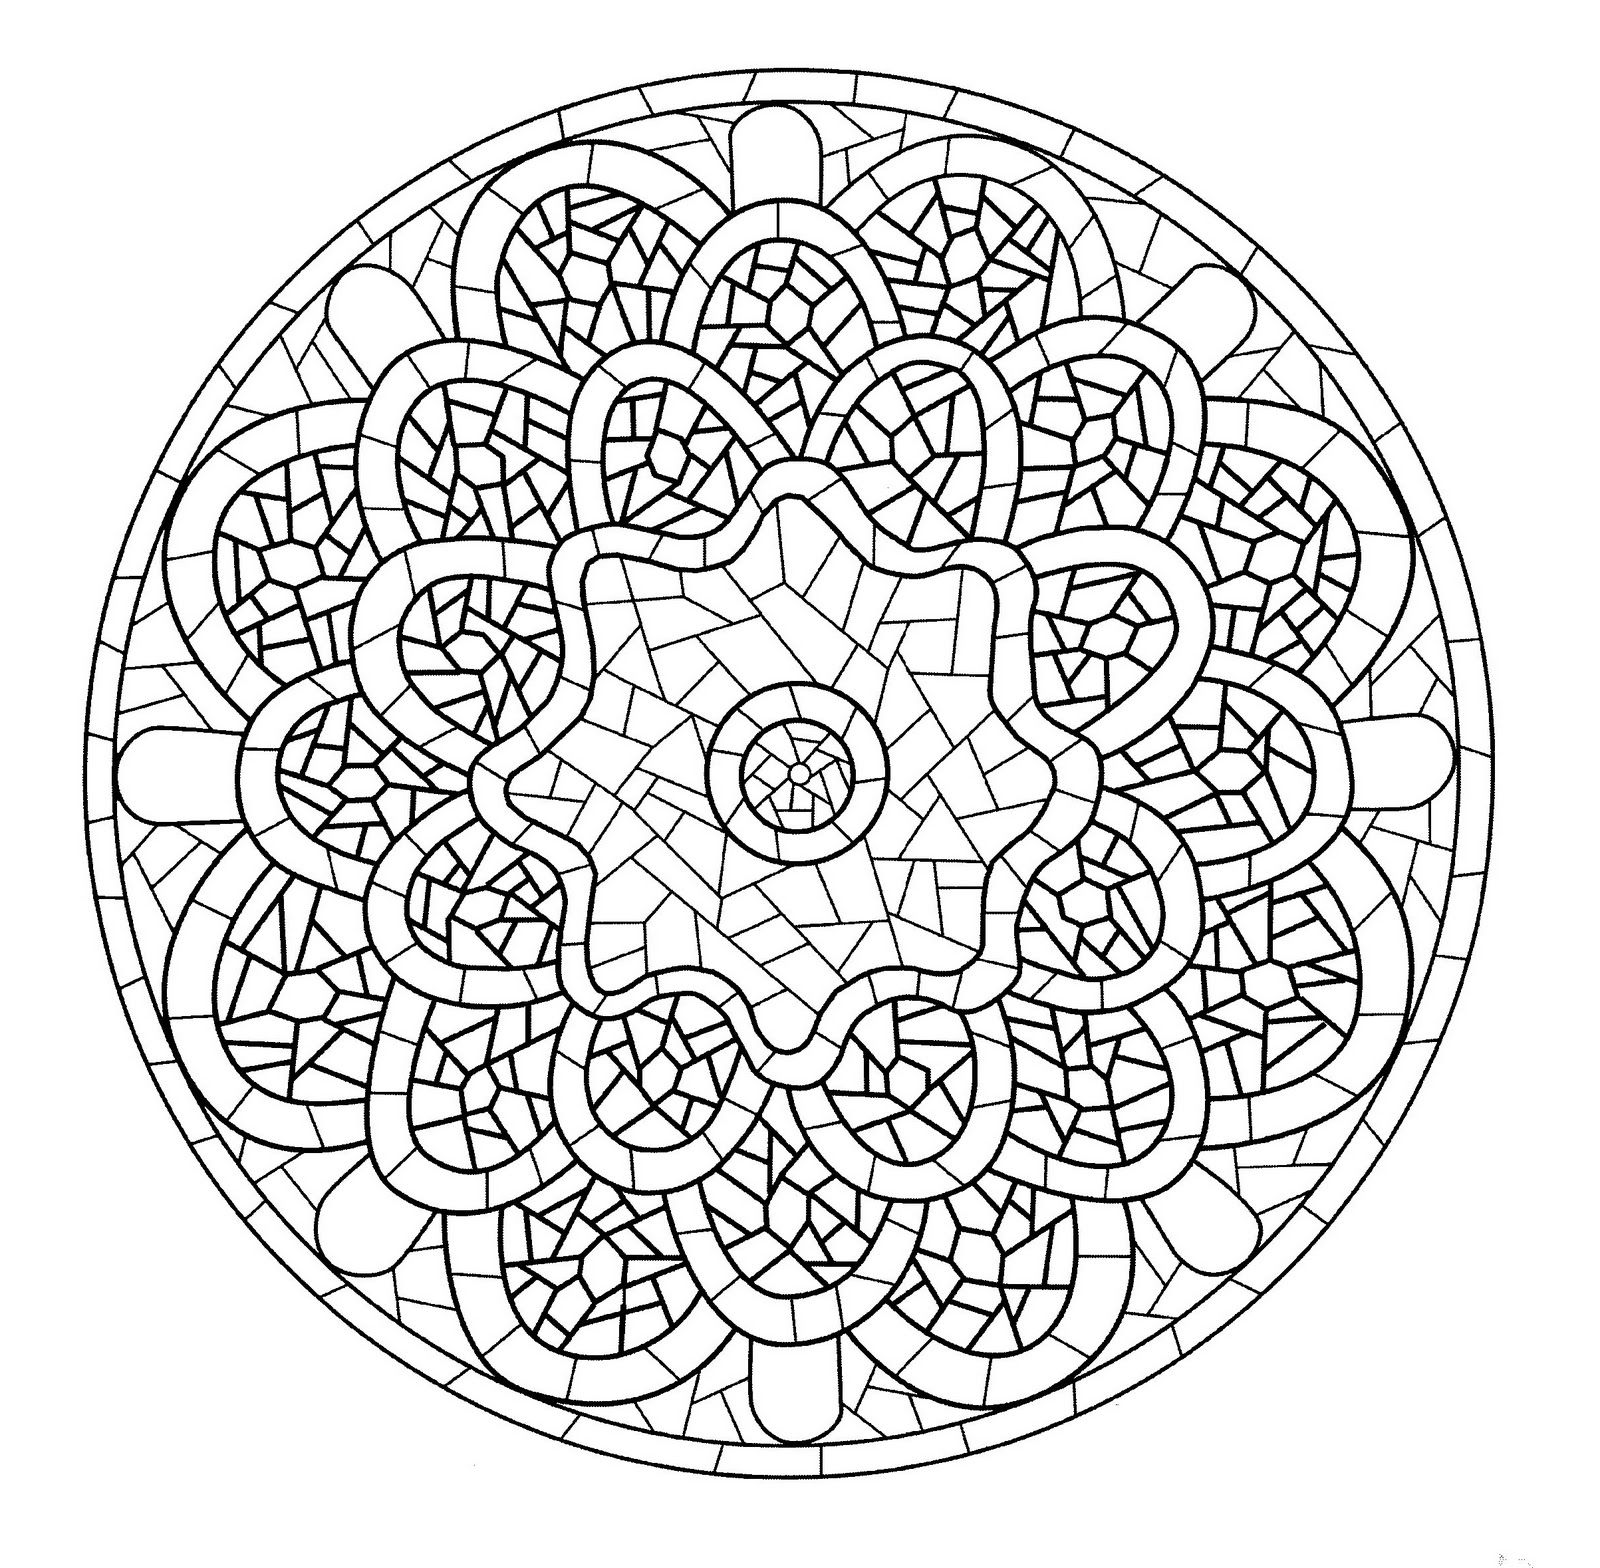 In these pages you will find our Mandalas coloring pages made to